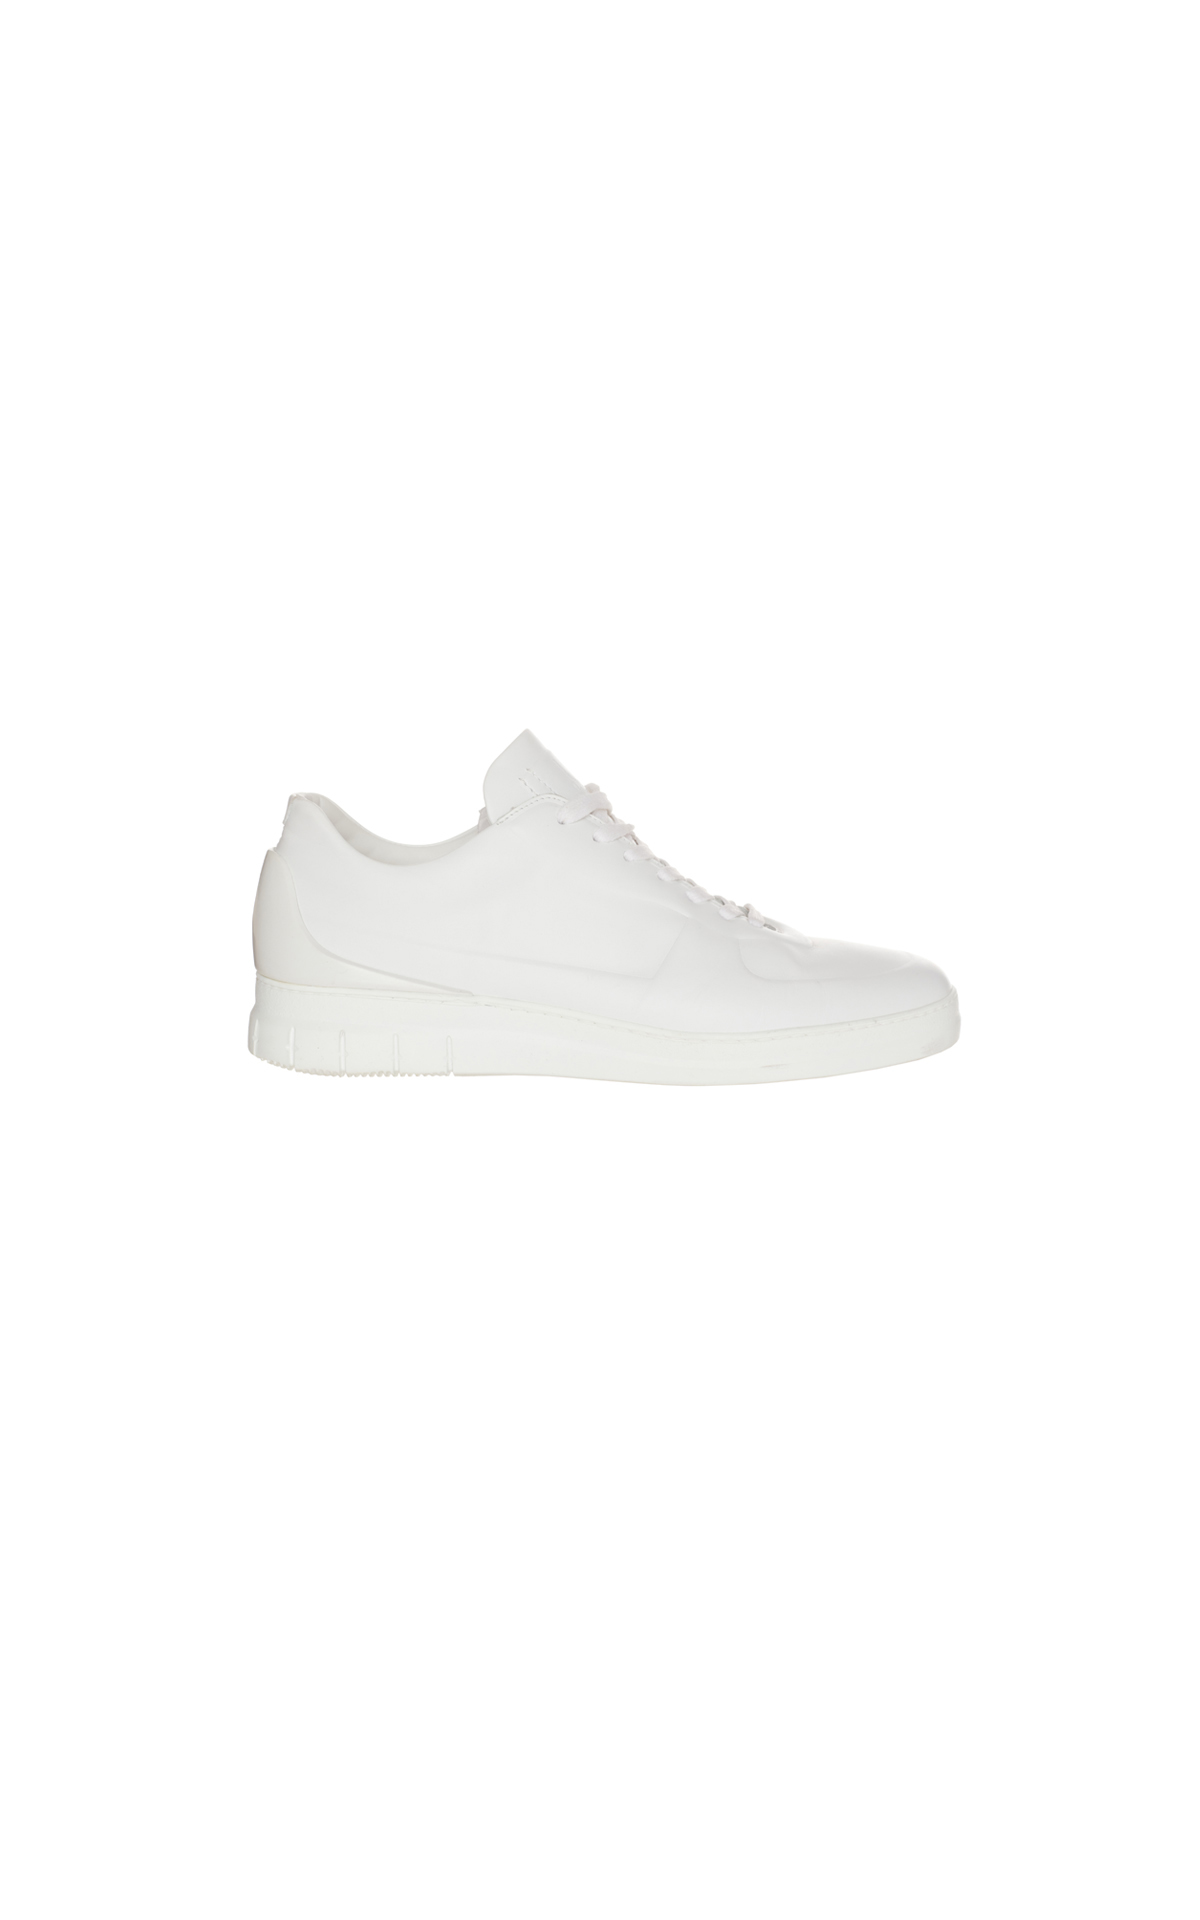 dunhill Radial spoiler lo sneaker from Bicester Village